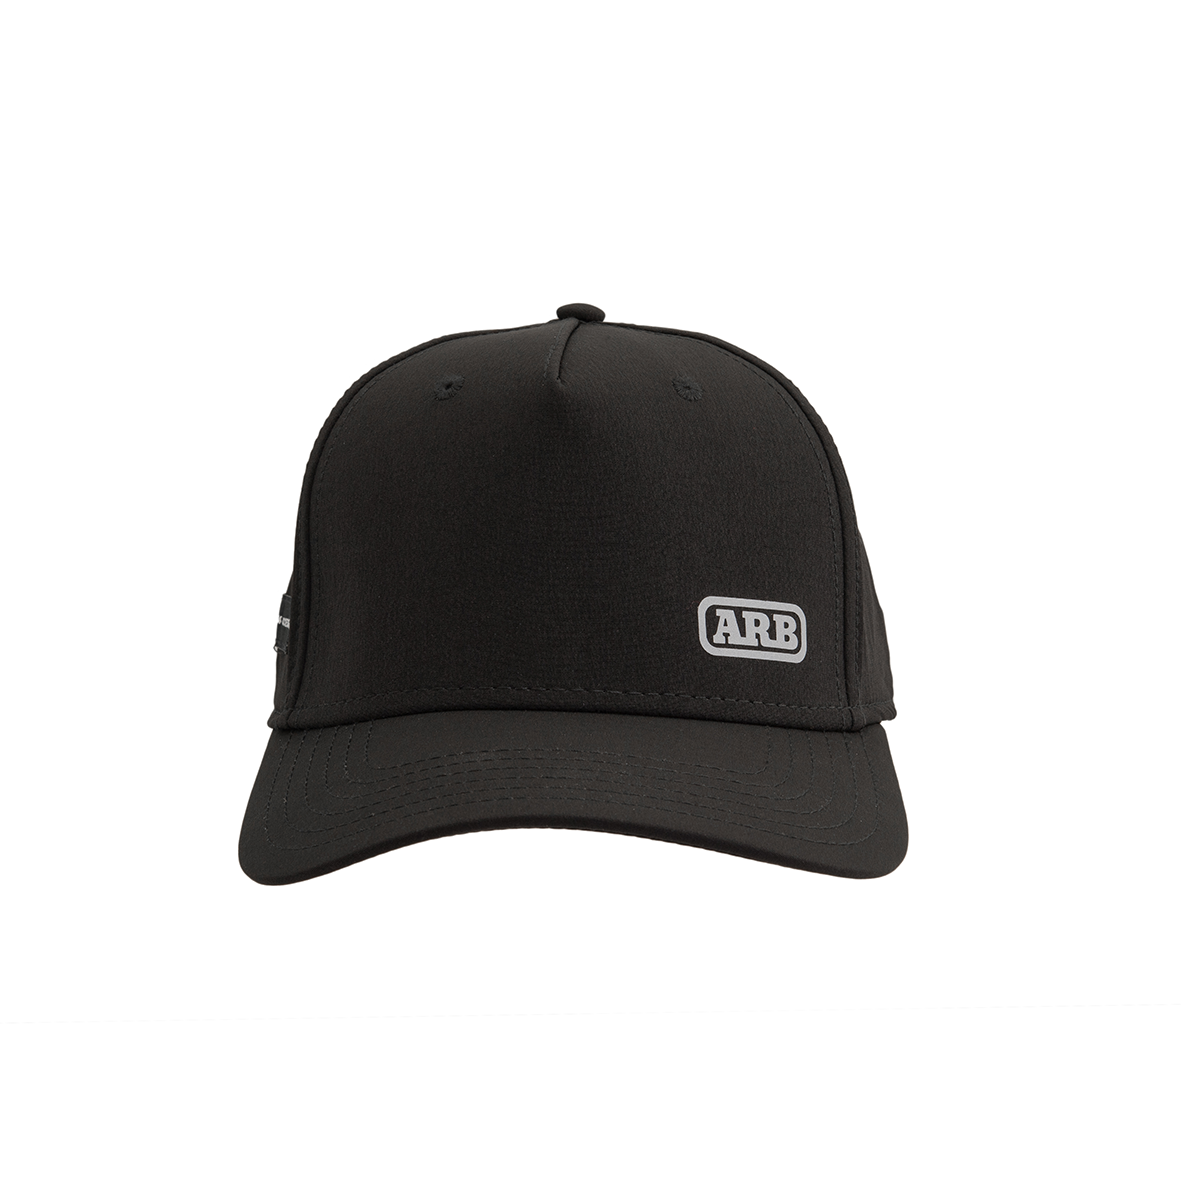 ARB Performance Cap